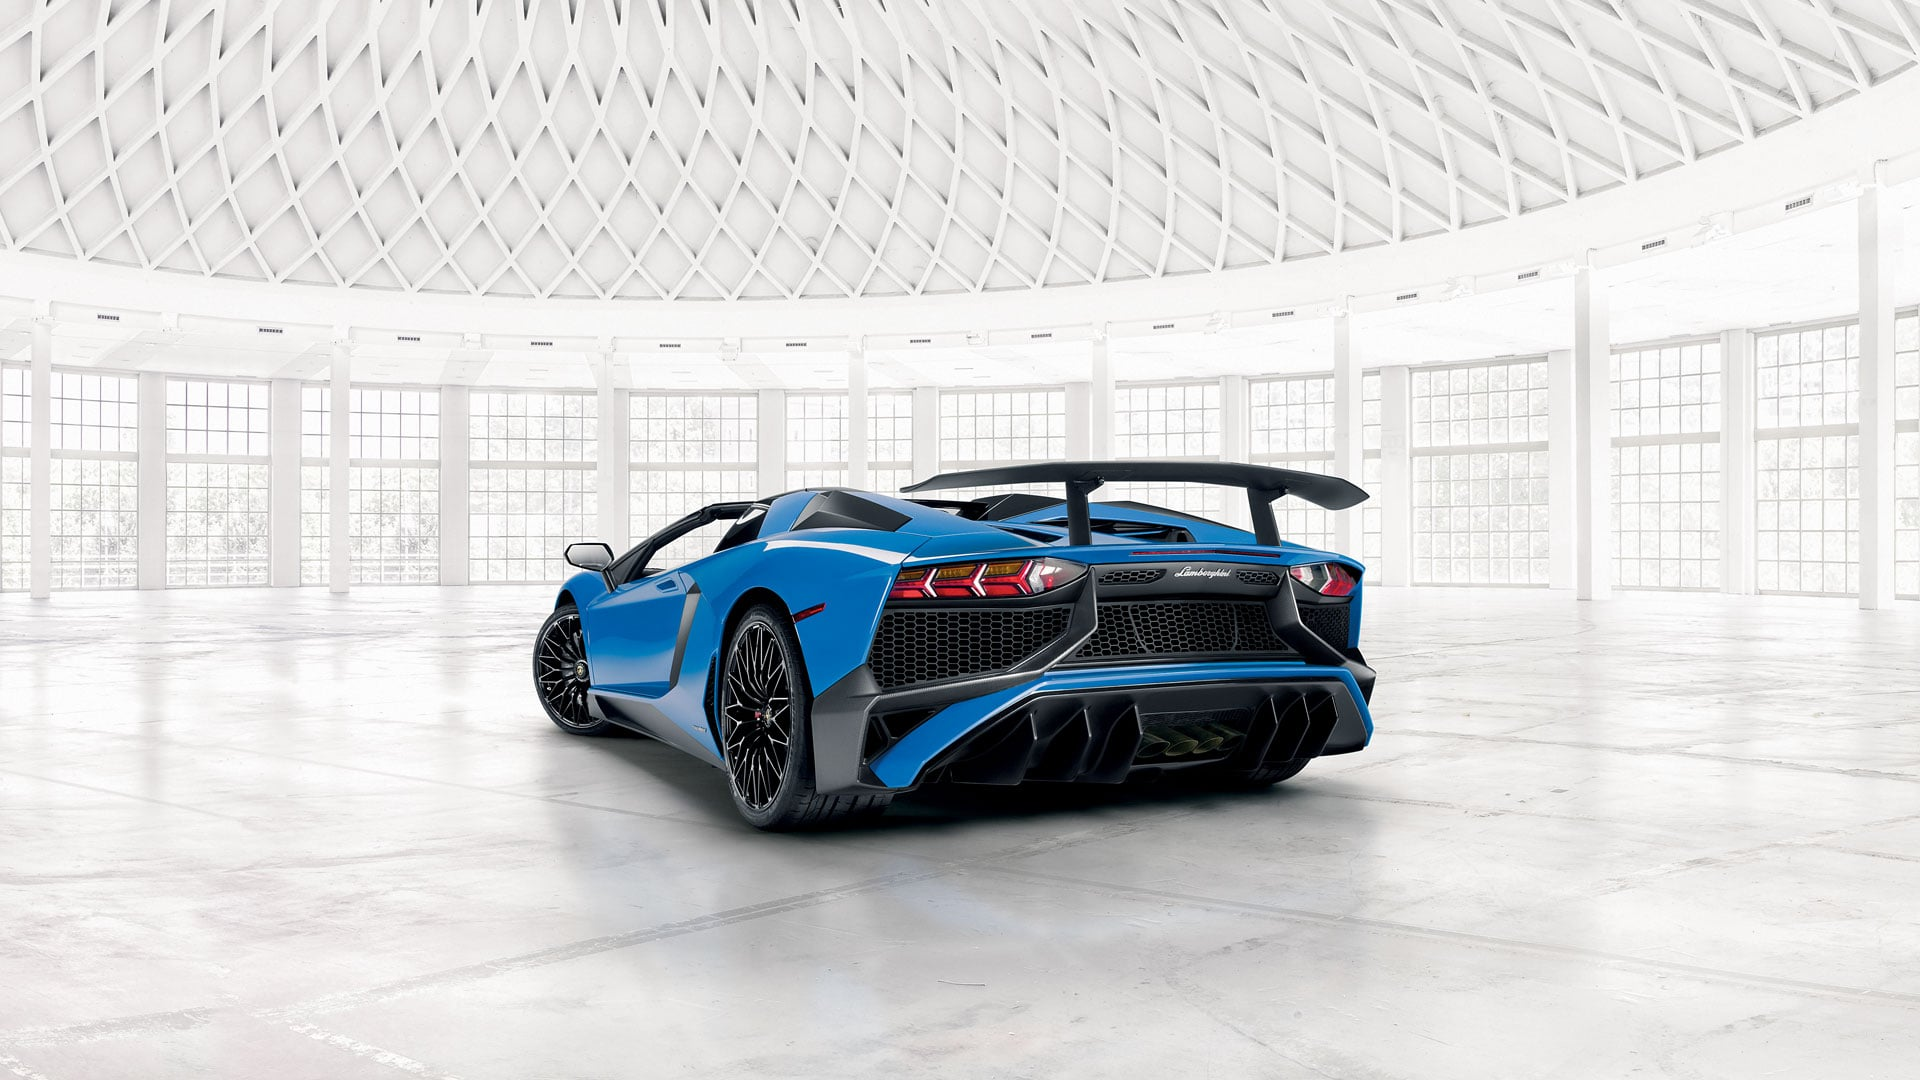 Lamborghini Aventador SV Roadster Rear View